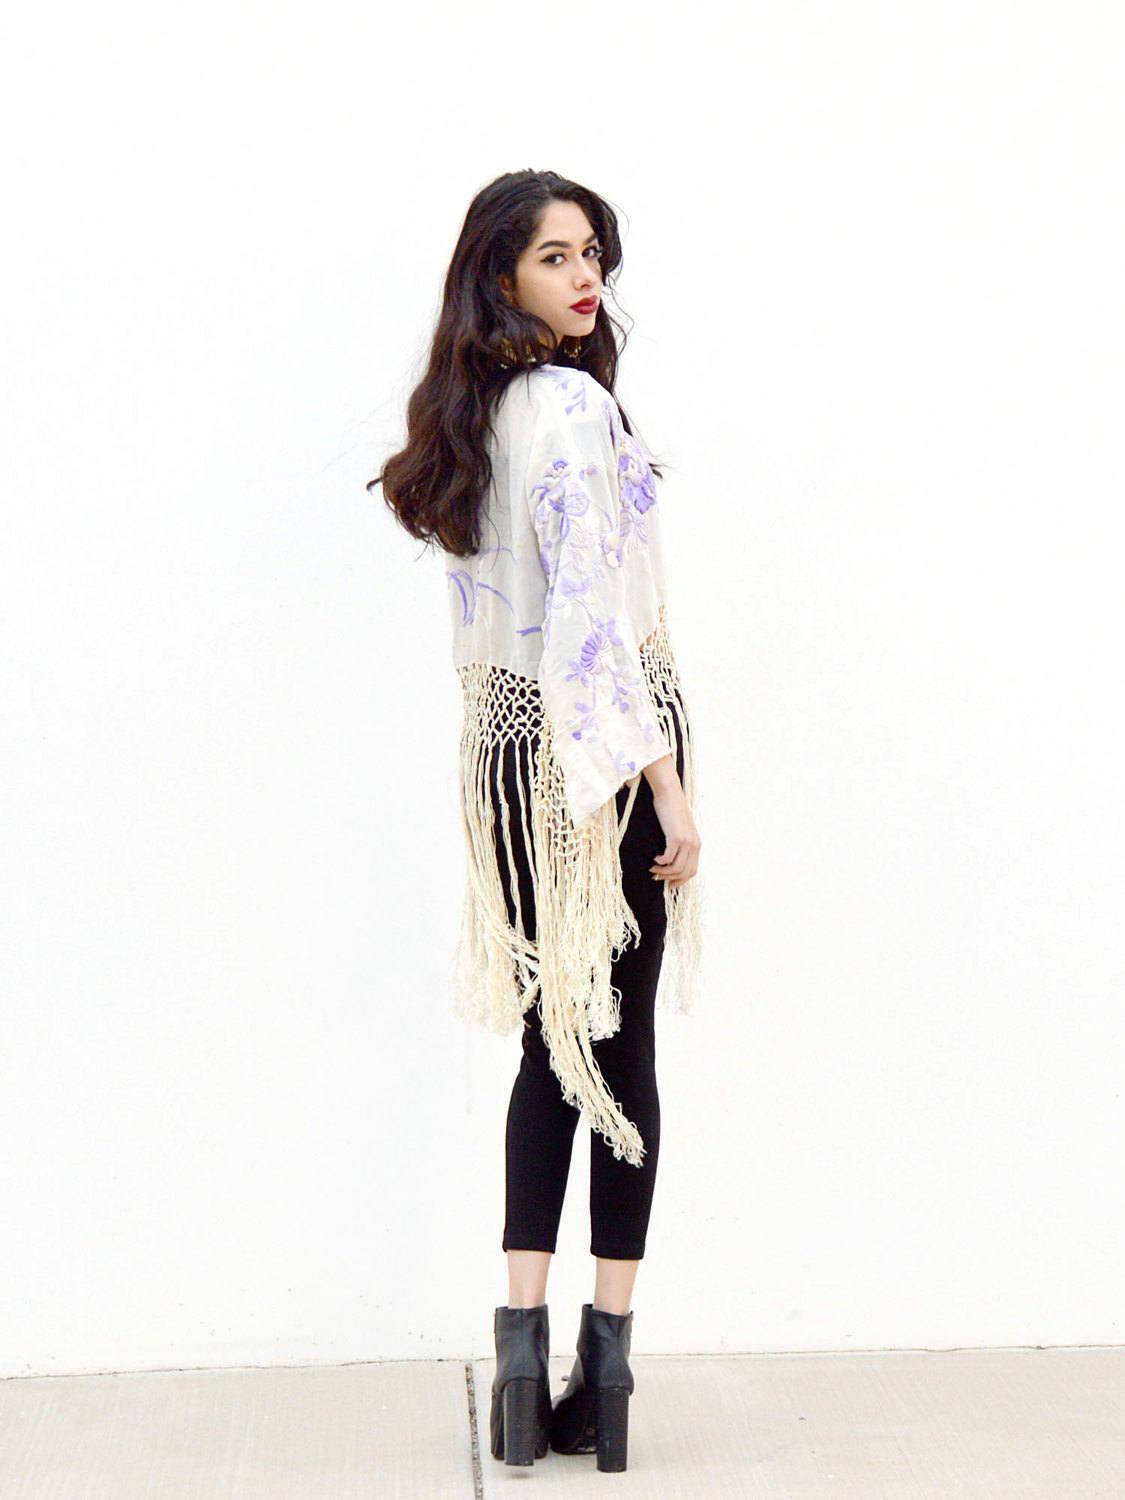 long sleeve waist length open jacket with long fringe